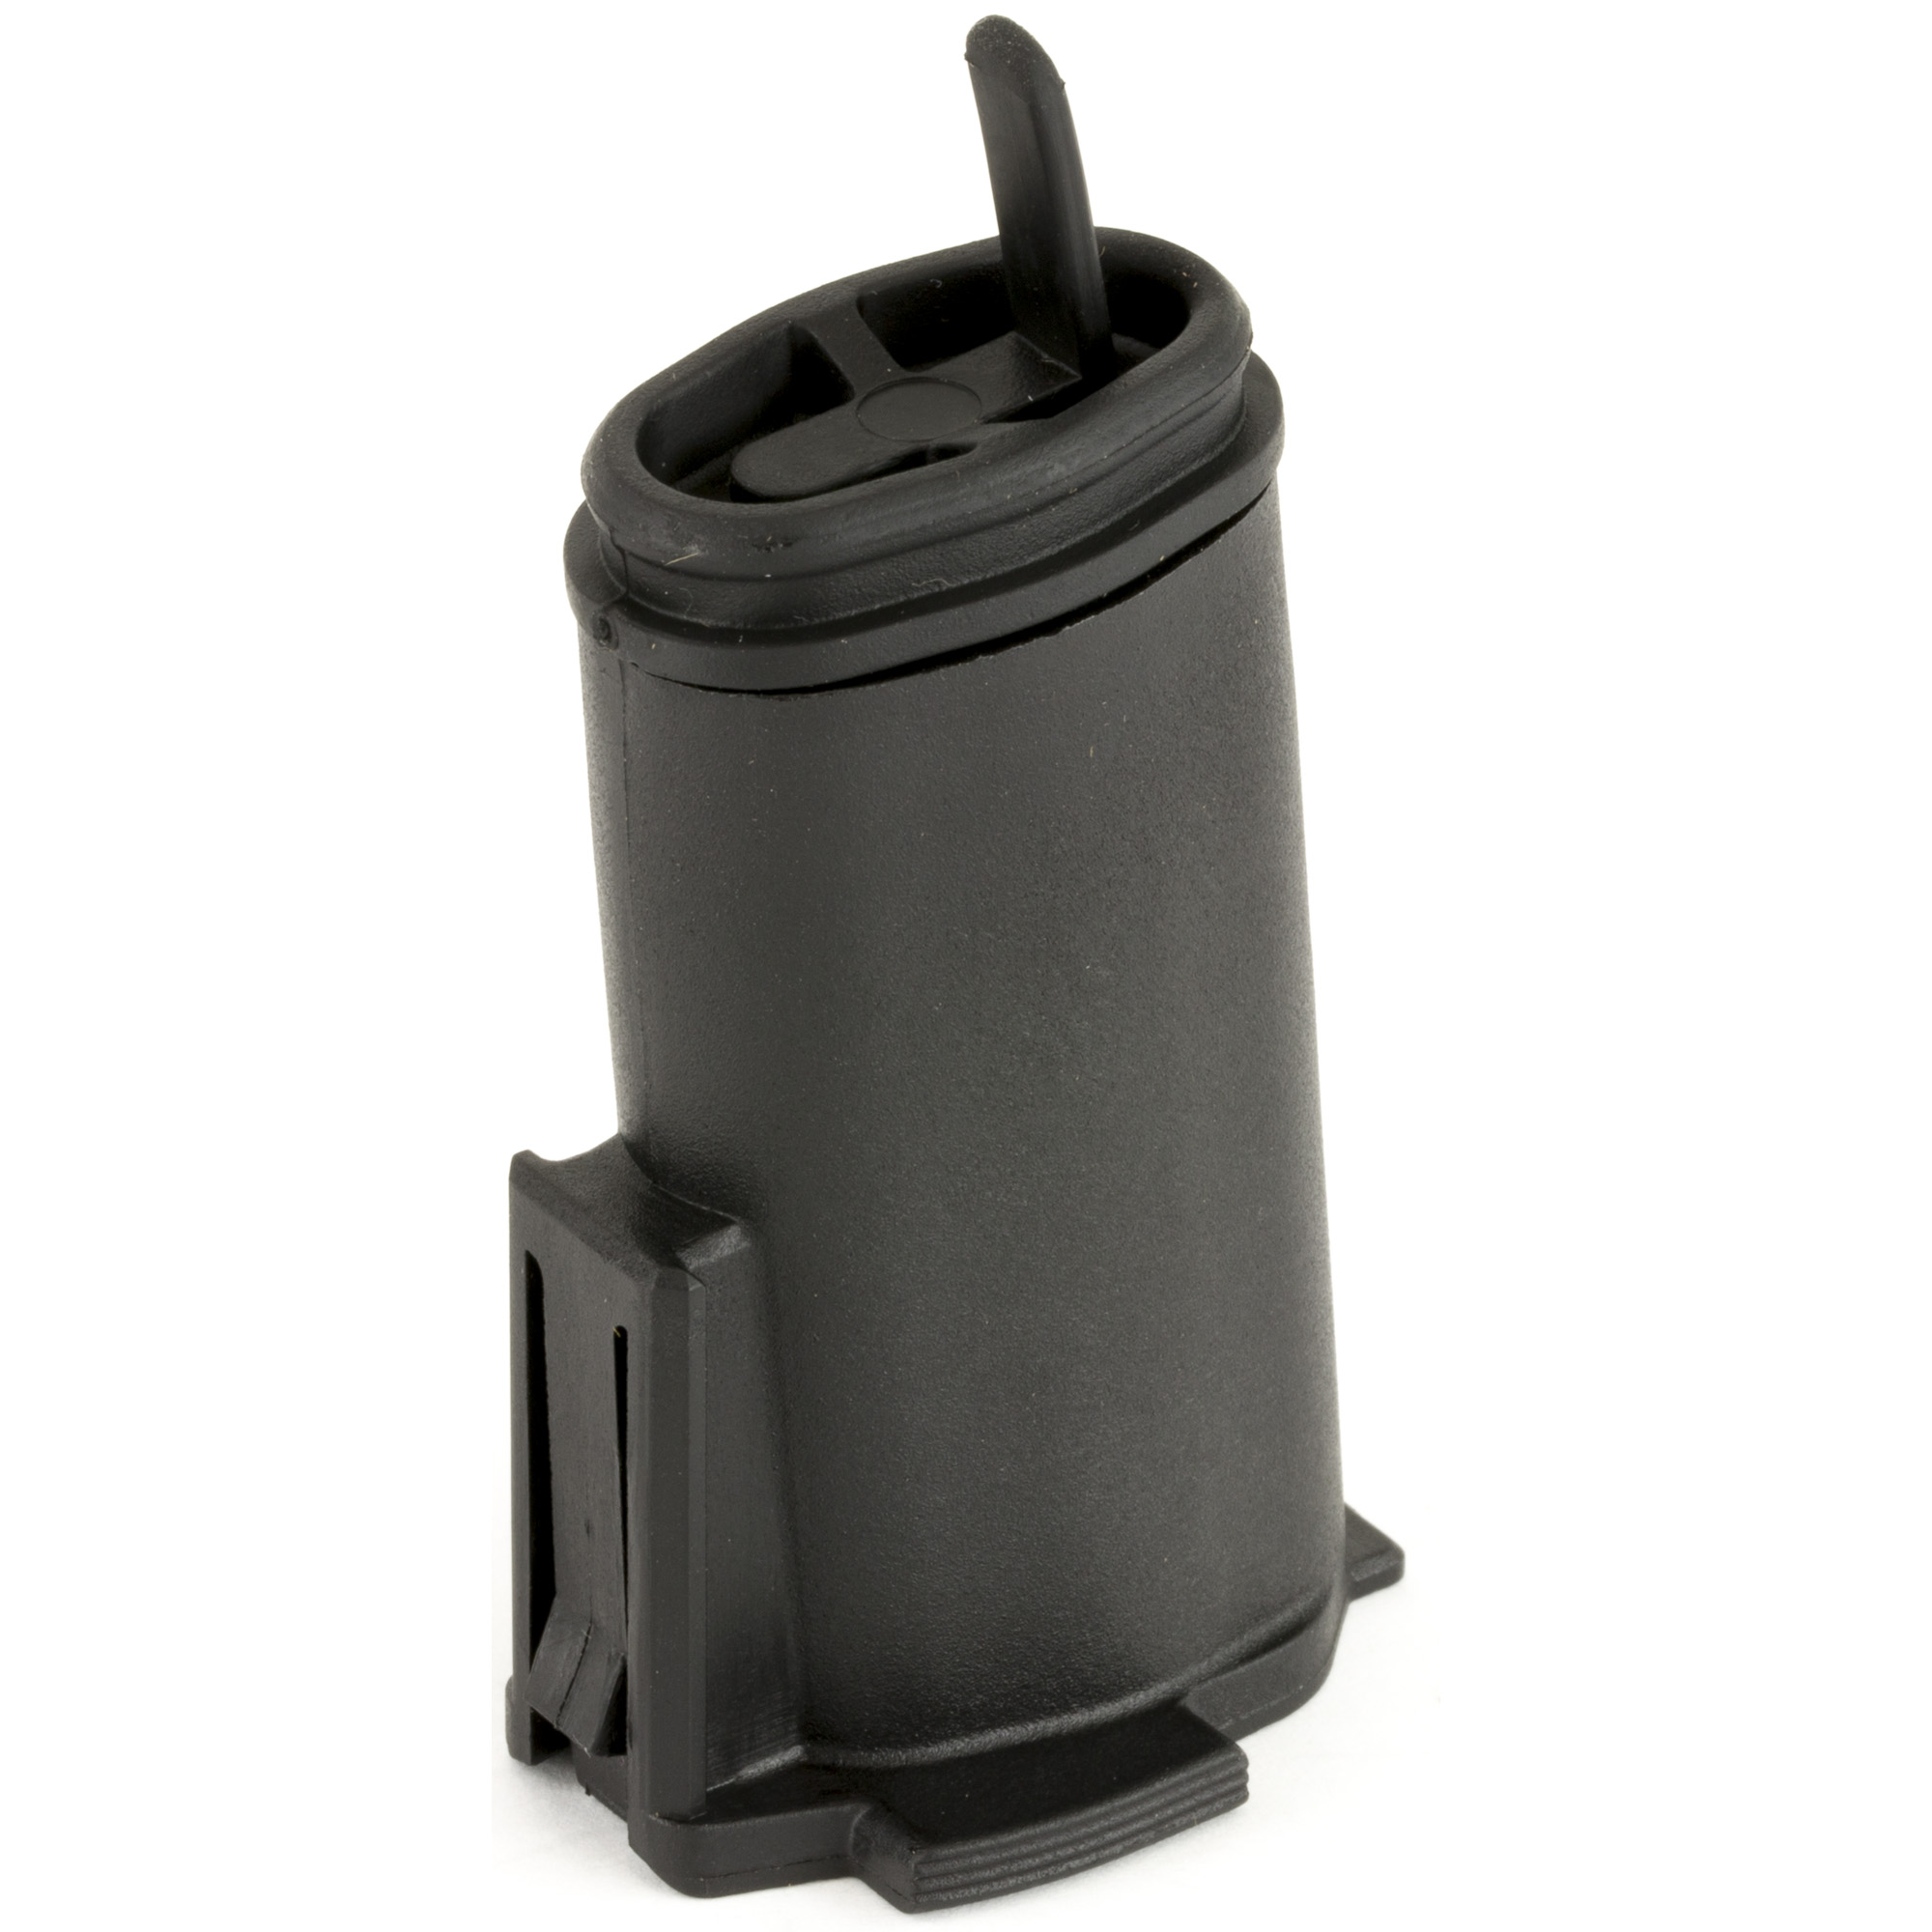 """Internal core unit for the MIAD as well as the MOE"""" MOE+"""" MOE-K2"""" and MOE AK Grips designed to hold two (2) AA type batteries in a self contained"""" water resistant unit. Included internal spacer provides rattle free storage of either (2) AAA or (2) N size batteries (commonly used for EOTech sights). Rubber cap has two sides with marking to identify """"spent"""" batteries and can be opened with a push of the thumb."""